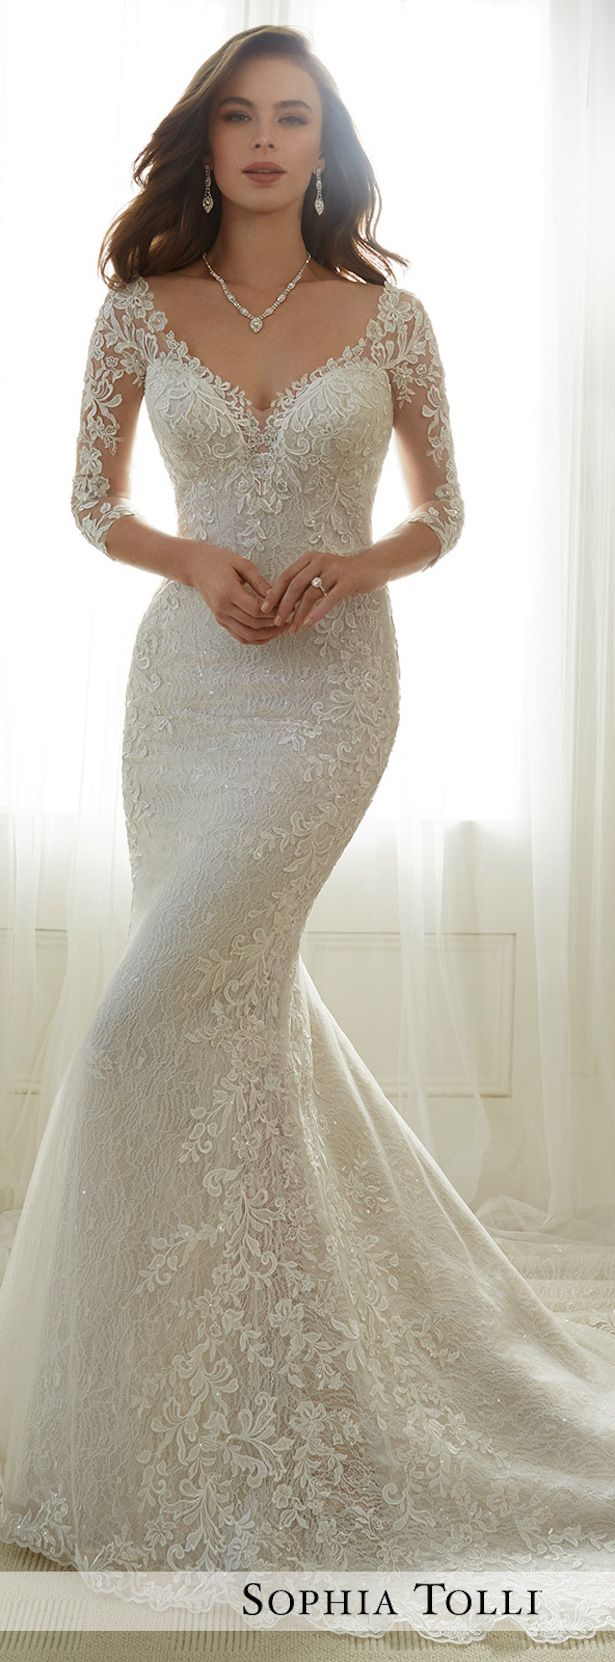 Lace Sleeves Wedding Dress - Sophia Tolli 2017